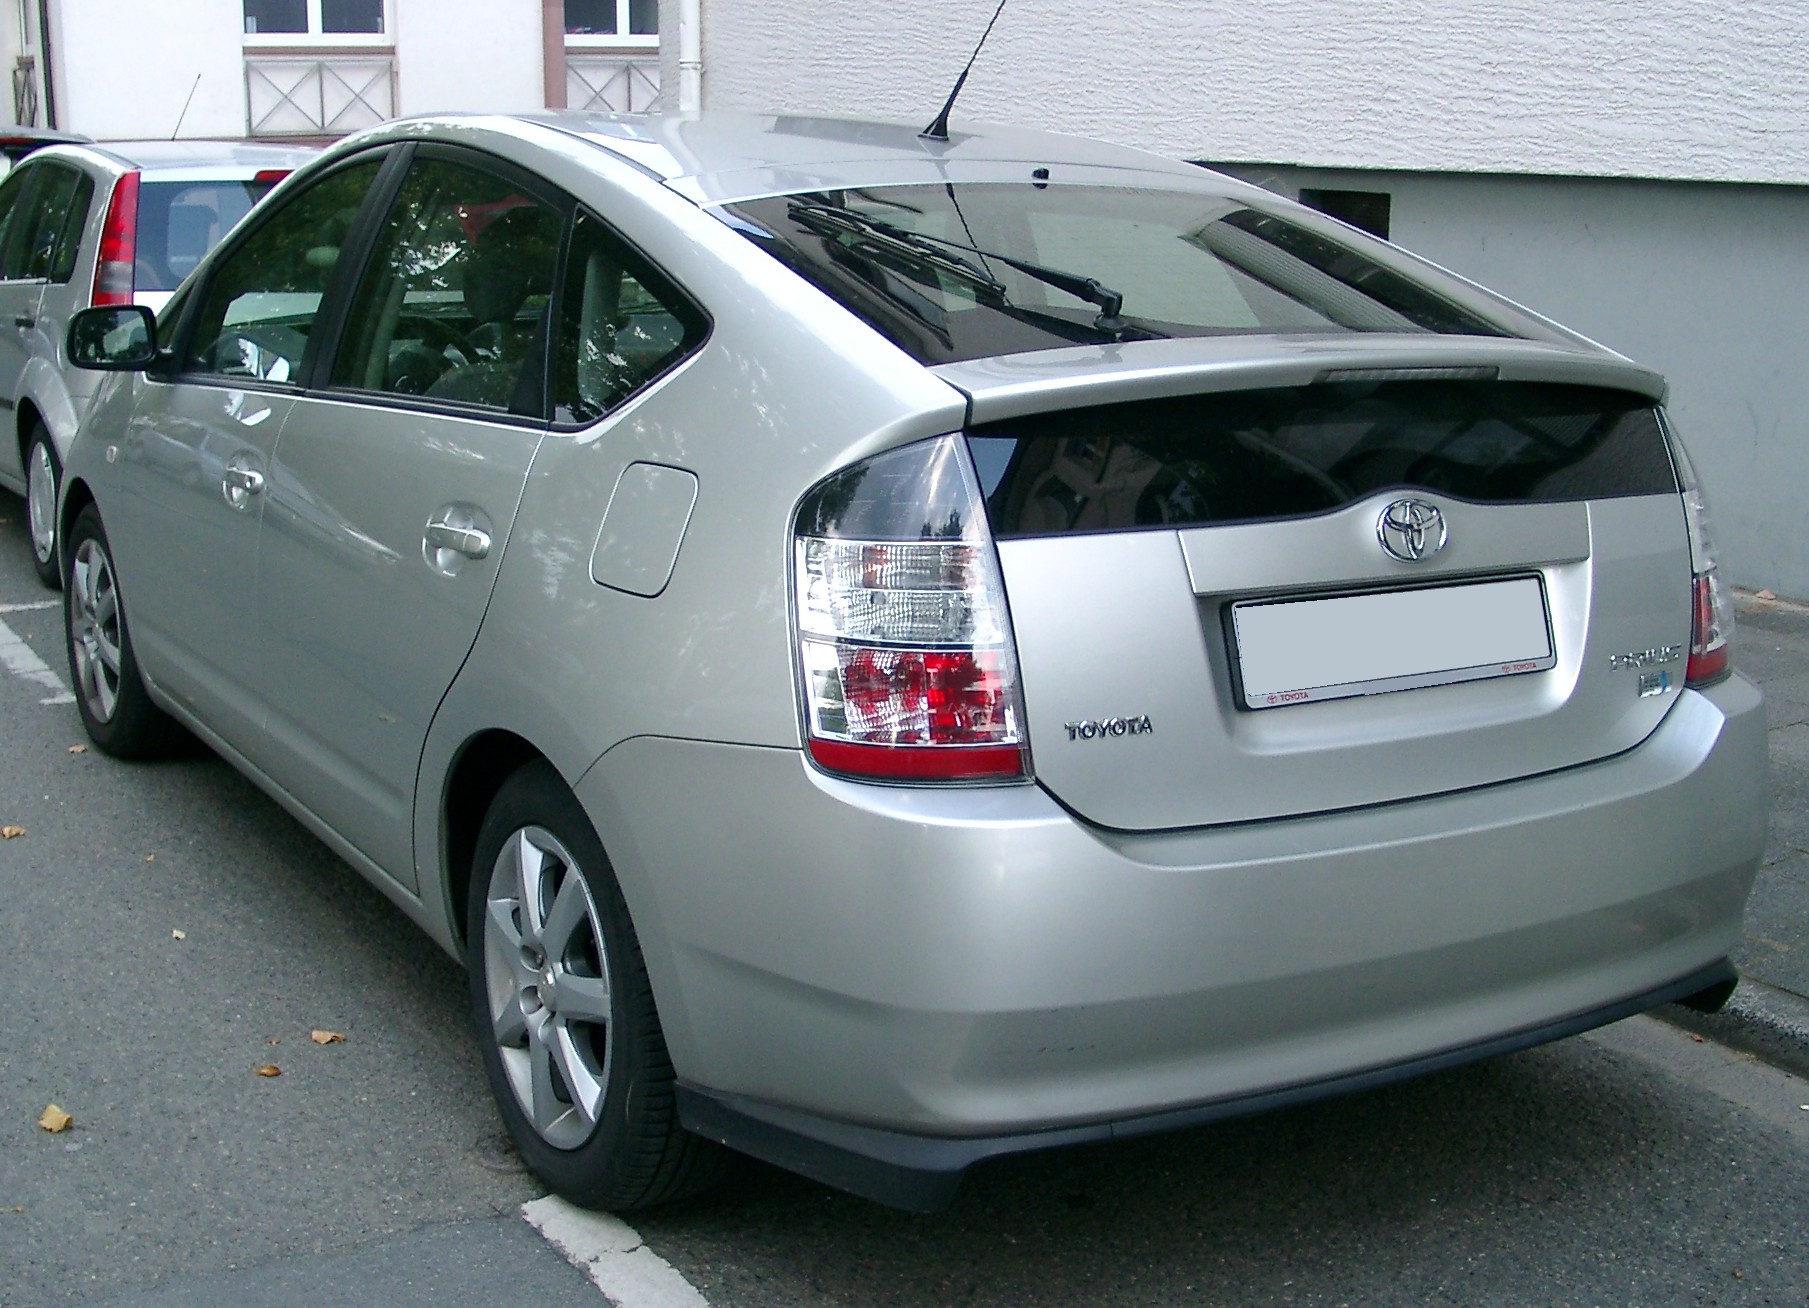 file toyota prius rear wikimedia commons. Black Bedroom Furniture Sets. Home Design Ideas